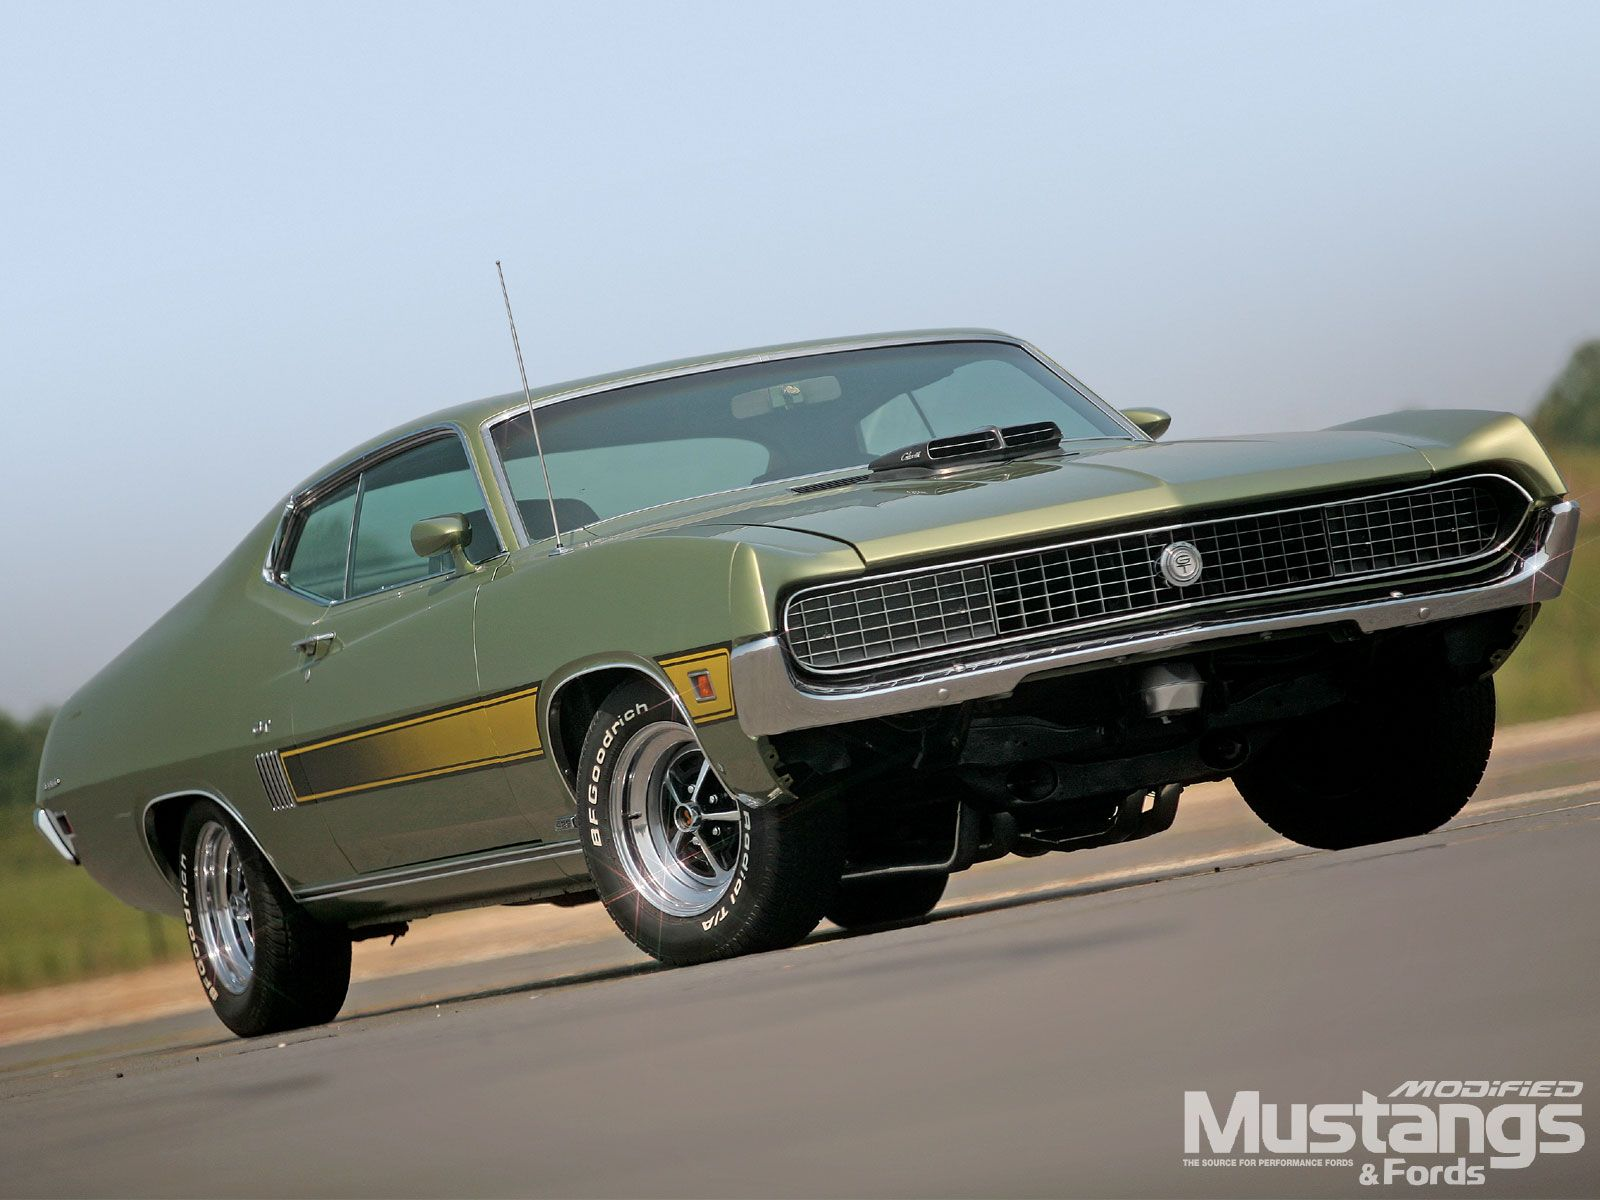 Hd Pictures Images Top High Resolution Images Muscle Cars American Muscle Cars Classic Cars Muscle